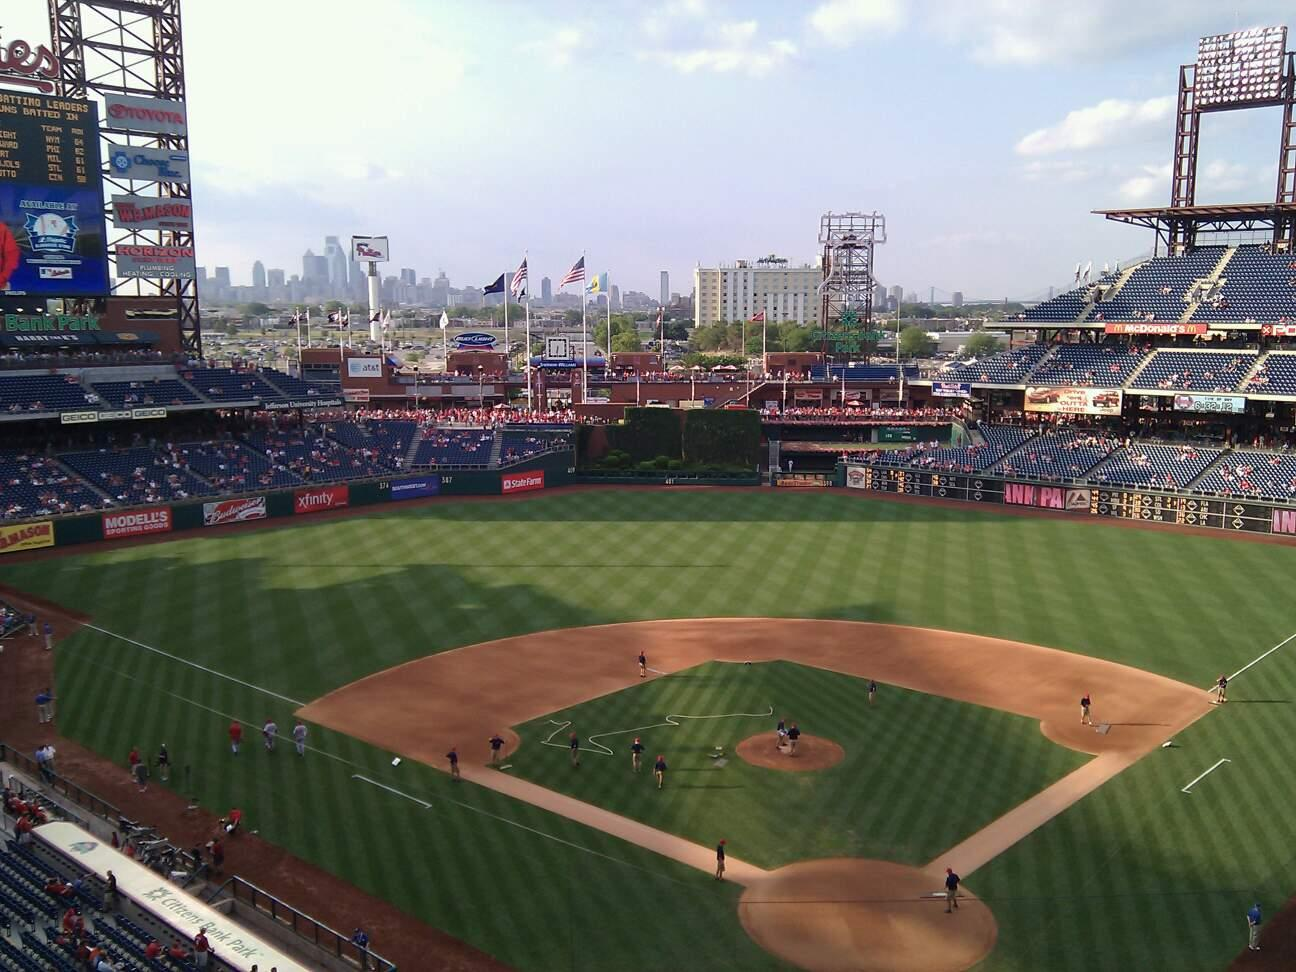 Citizens Bank Park Section 321 Row 1 Seat 20